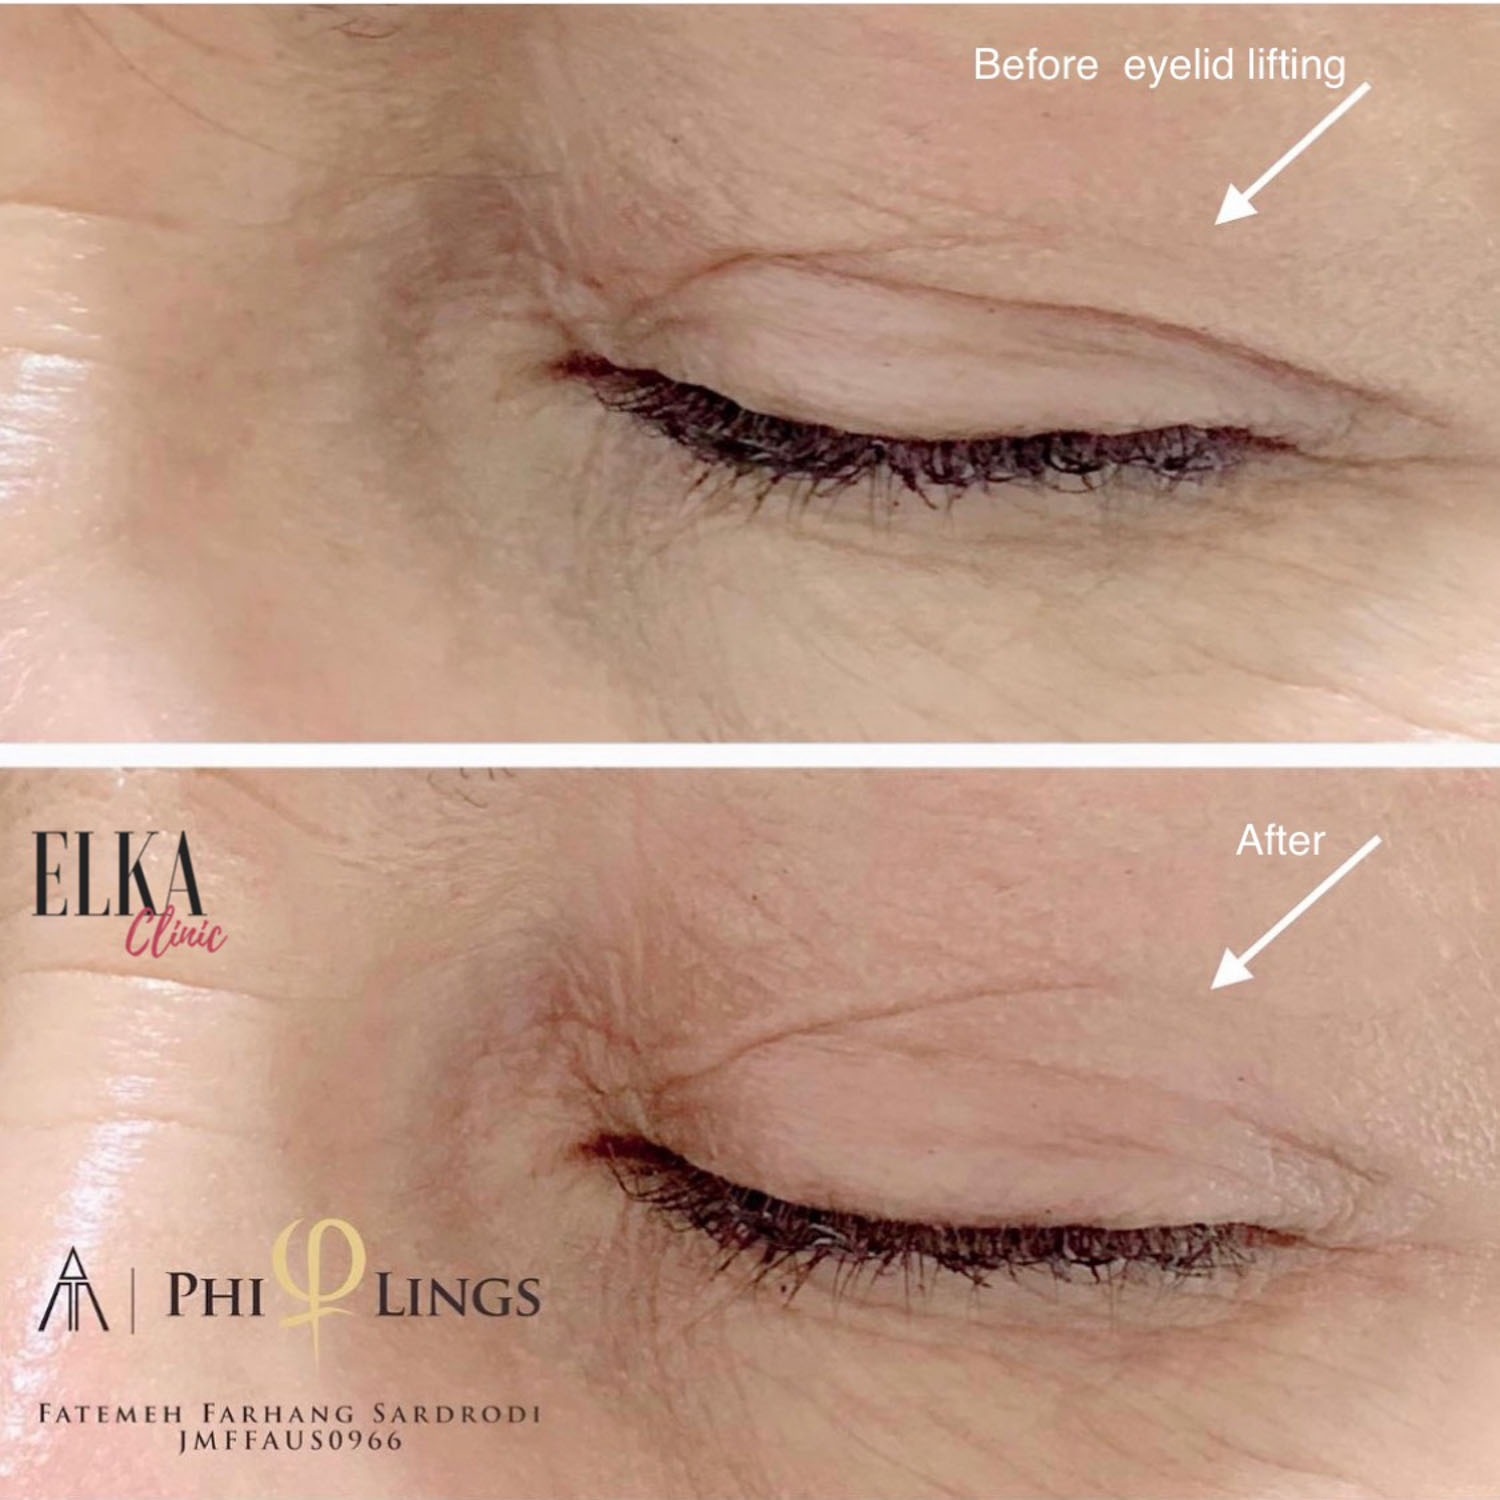 eyelid lifting by phi ion plasma pen